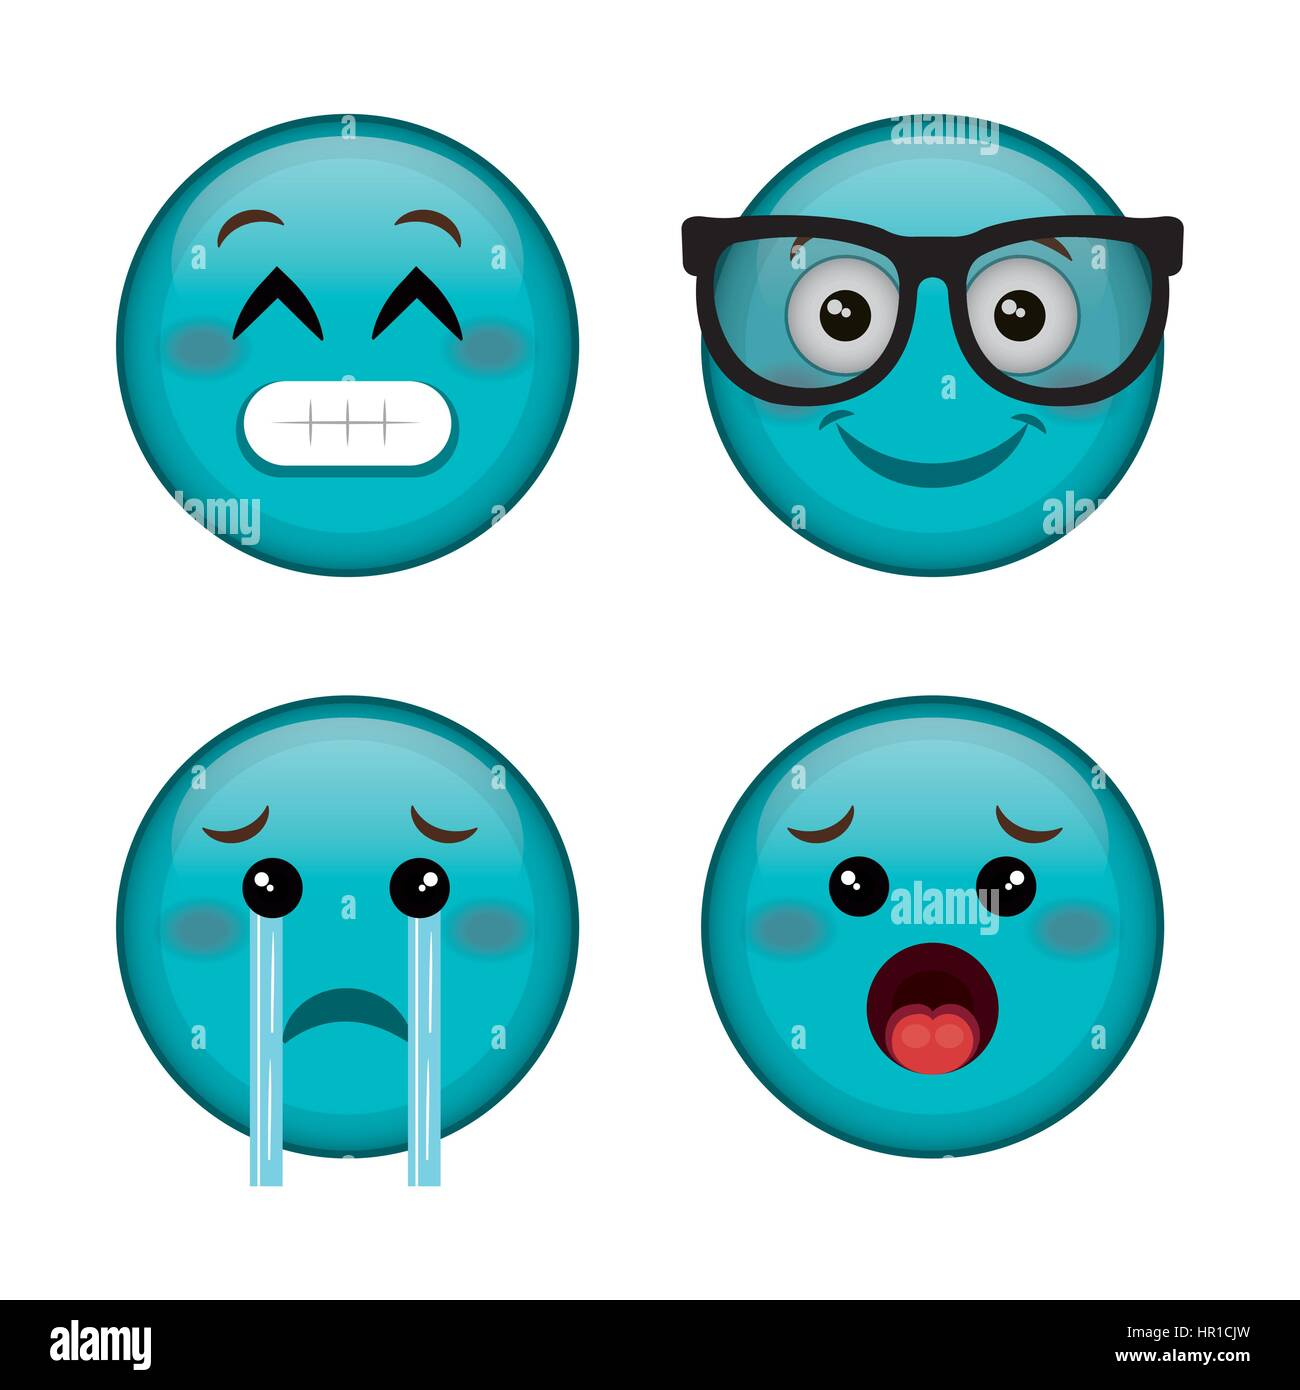 emoticons faces characters icons - Stock Image